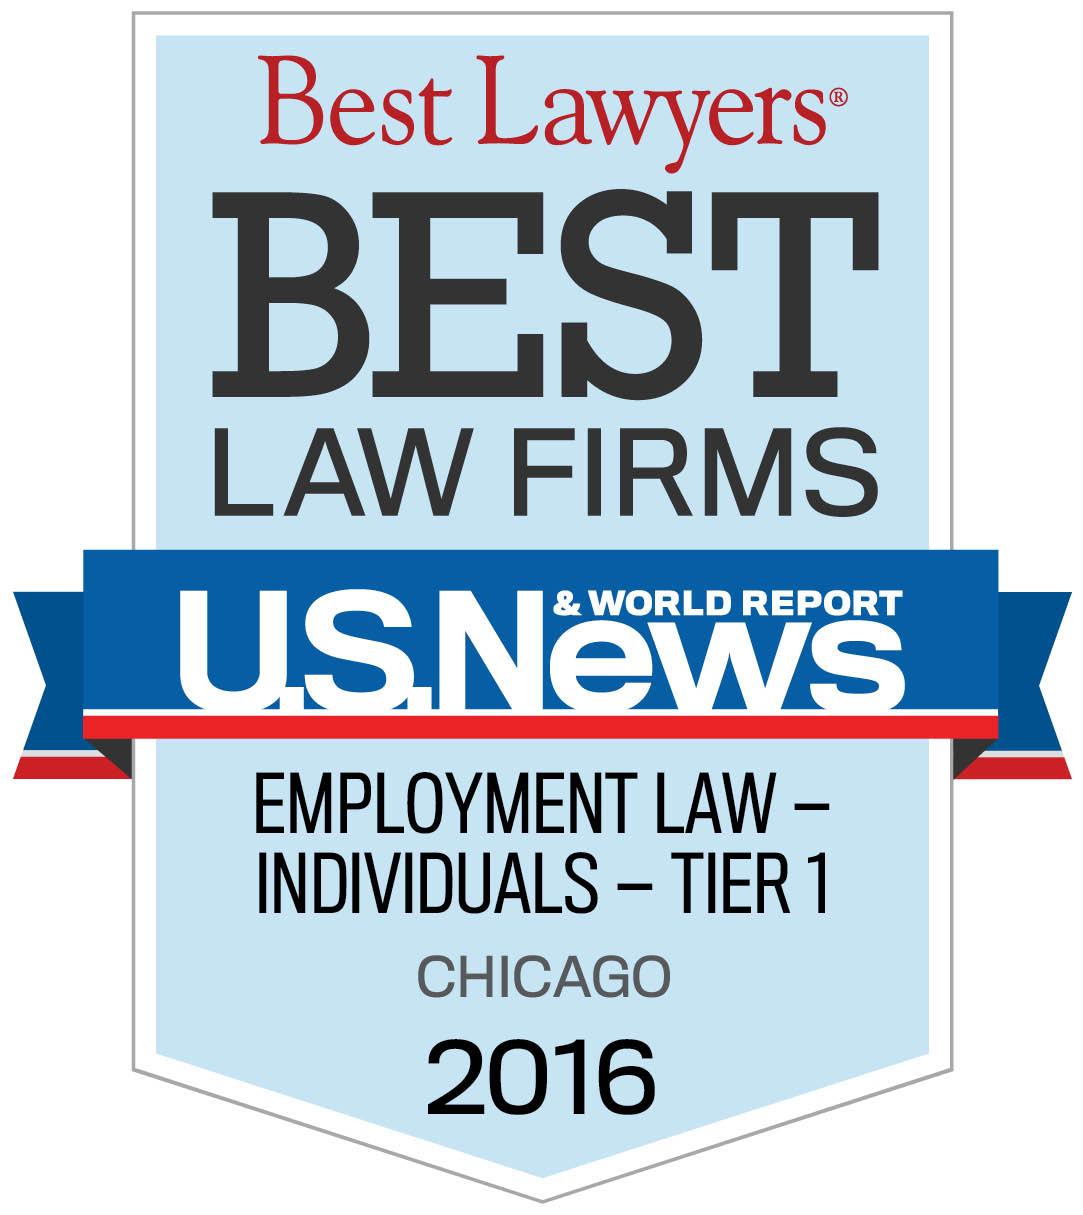 Best Lawyers 2016 badge logo